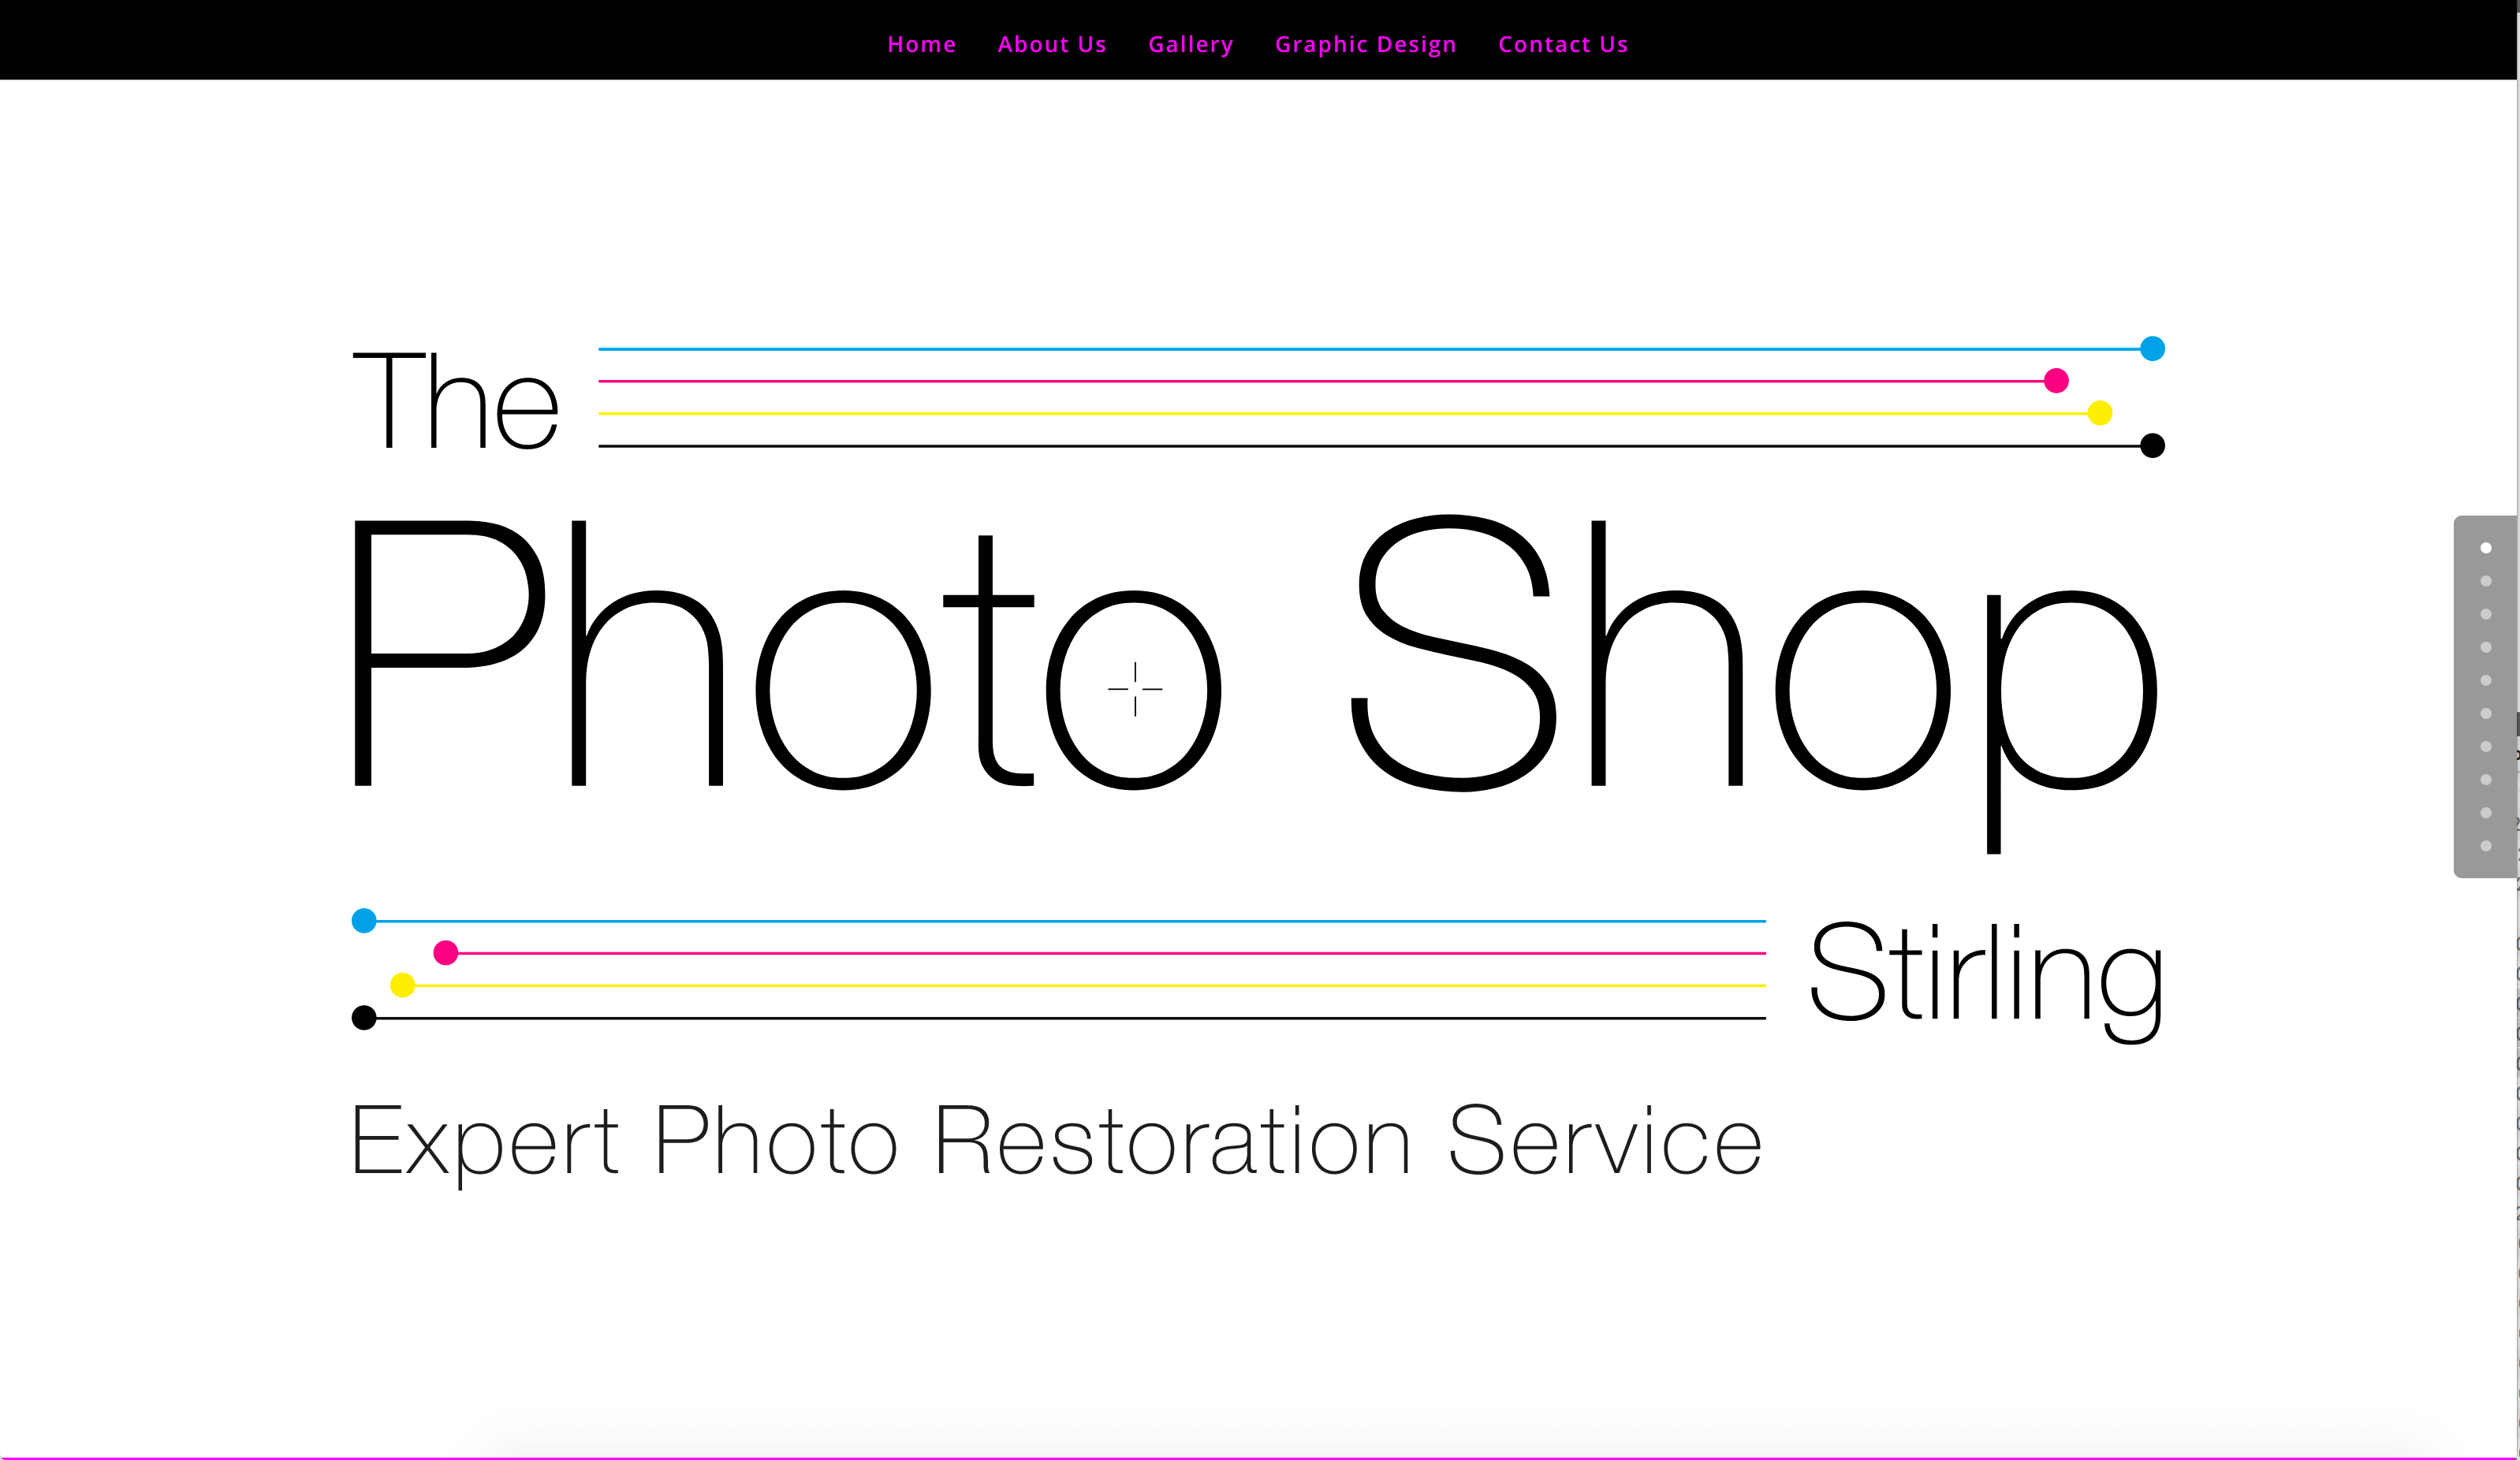 The Photo Shop Stirling Website